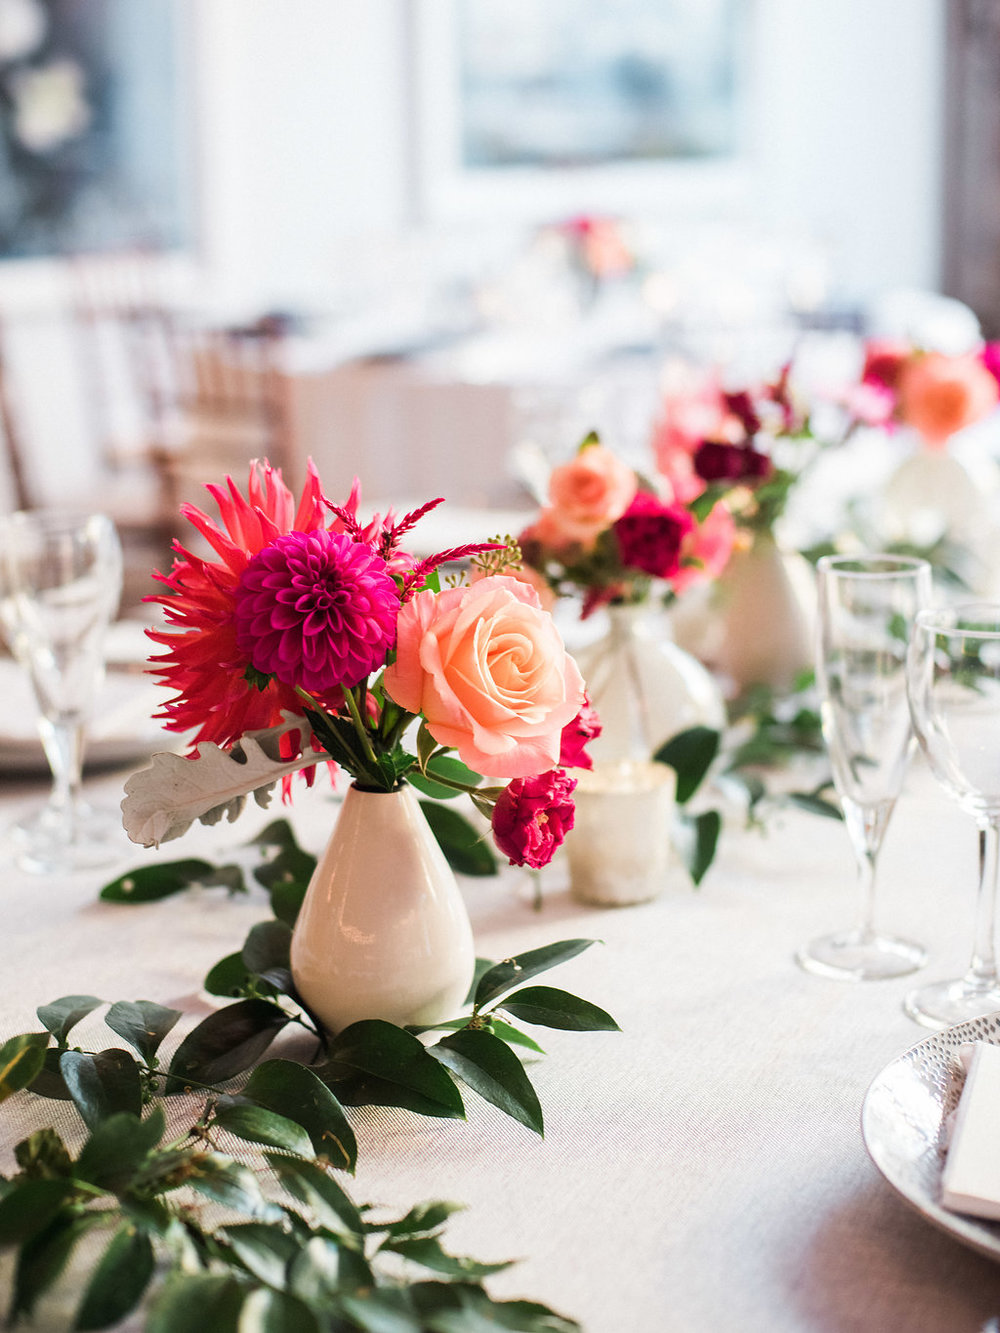 Longview Gallery Wedding Washington DC Lissa Ryan Photography Sincerely Pete Events Pink Centerpiece